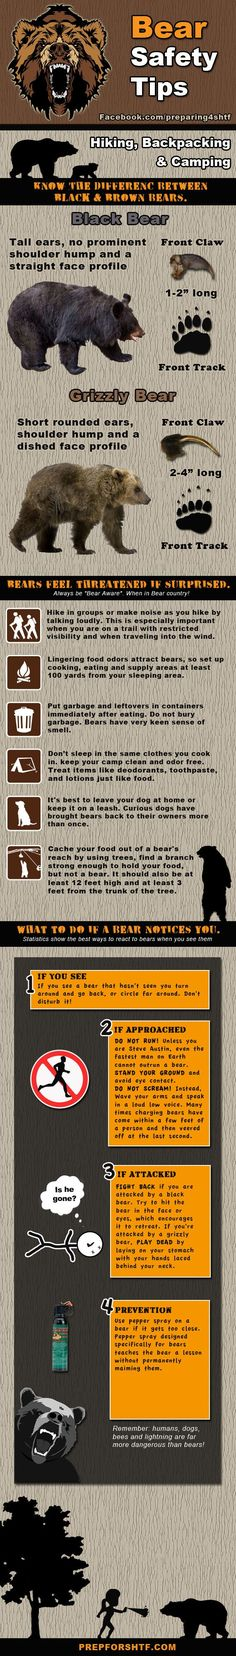 Bear Safety Tips - Outdoor Sports / Recreation Guide